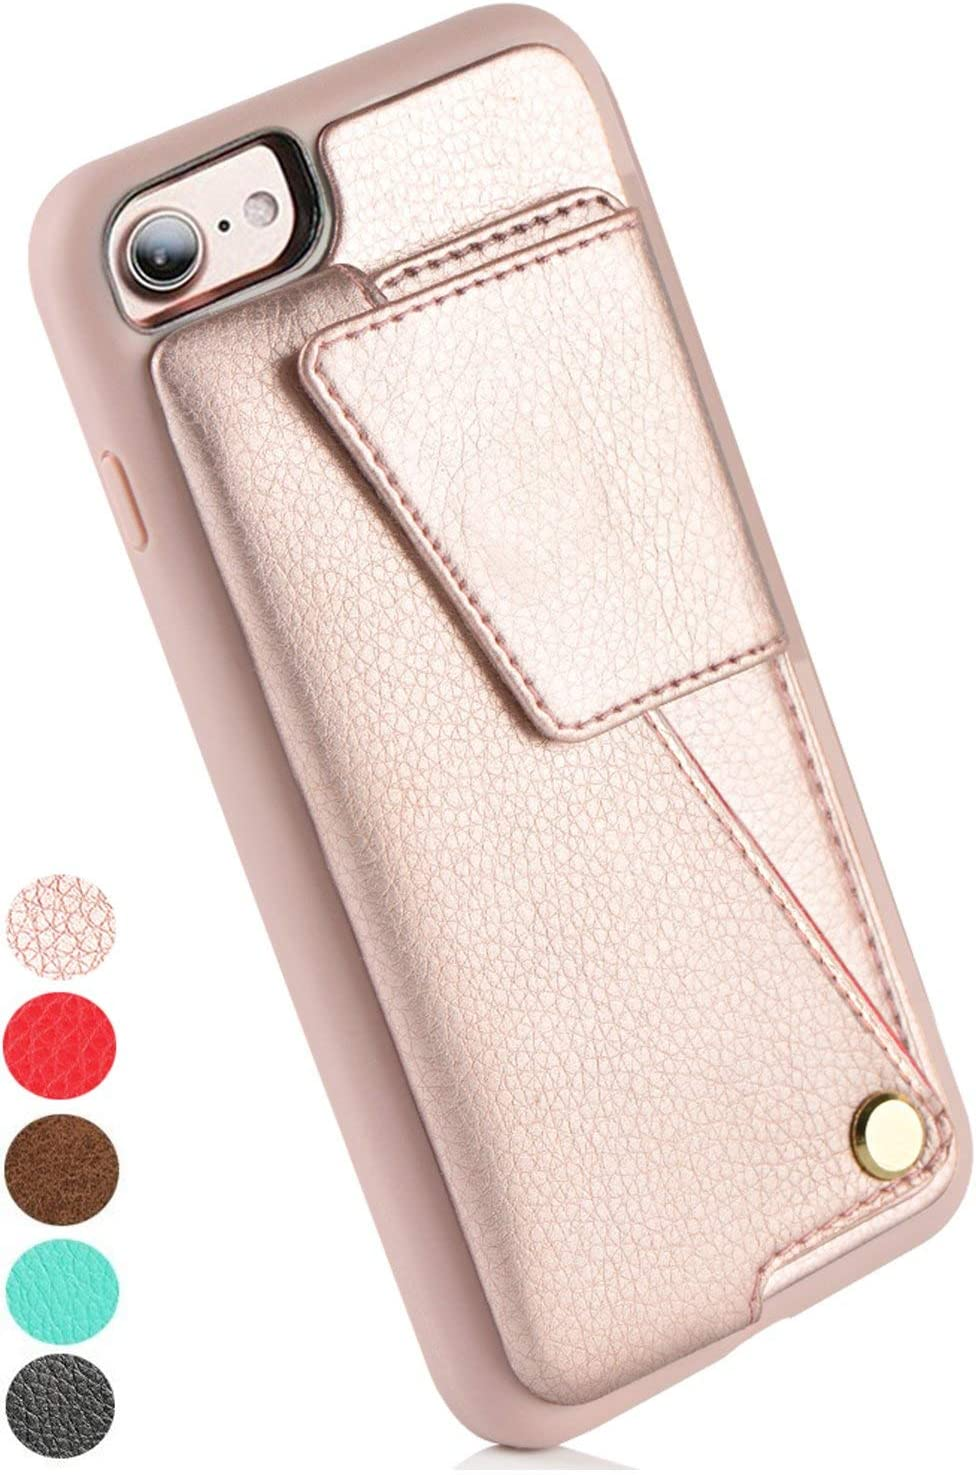 Amazon Com Iphone 7 Wallet Case Zvedeng Iphone 8 Wallet Case With Credit Card Slot Holder Rotational Wallet Phone Case Slim Handbag Purse Protective Cover For Apple Iphone 7 8 4 7inch Rose Gold